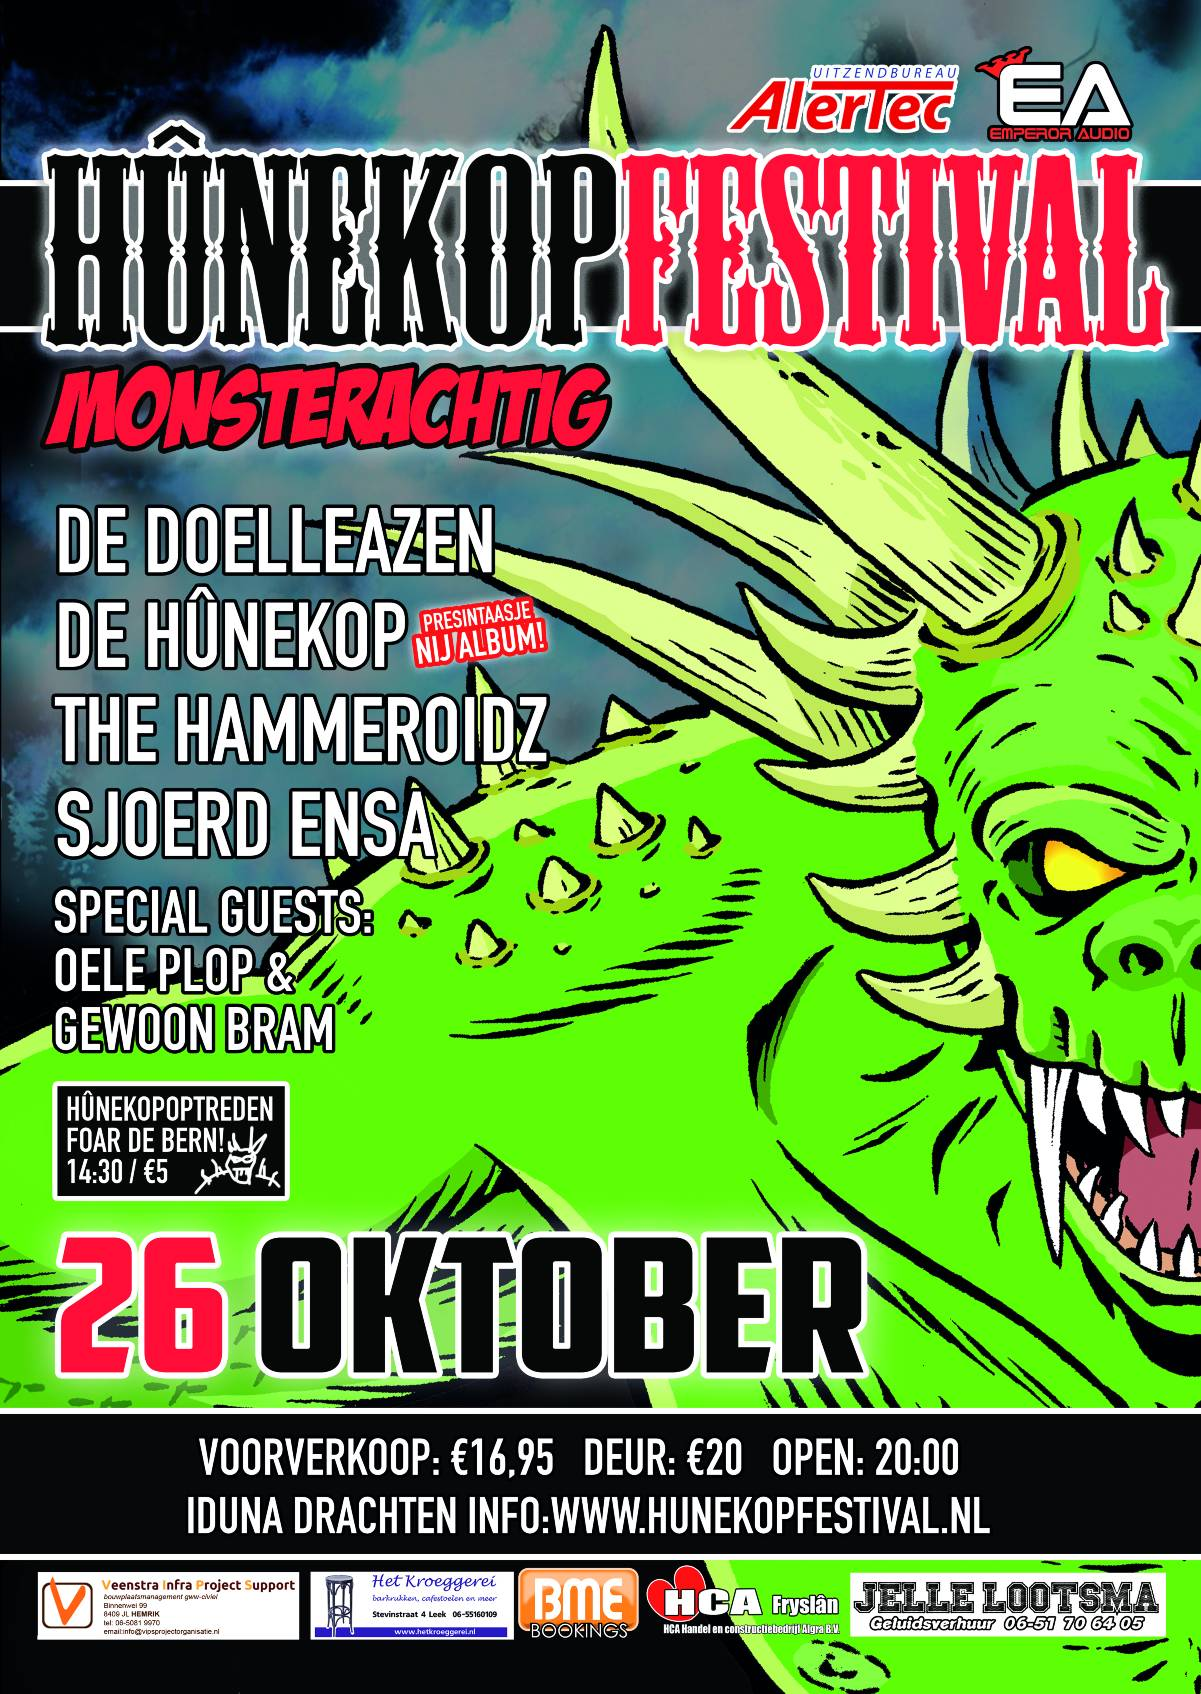 HKF2019 POSTER MONSTERACHTICH